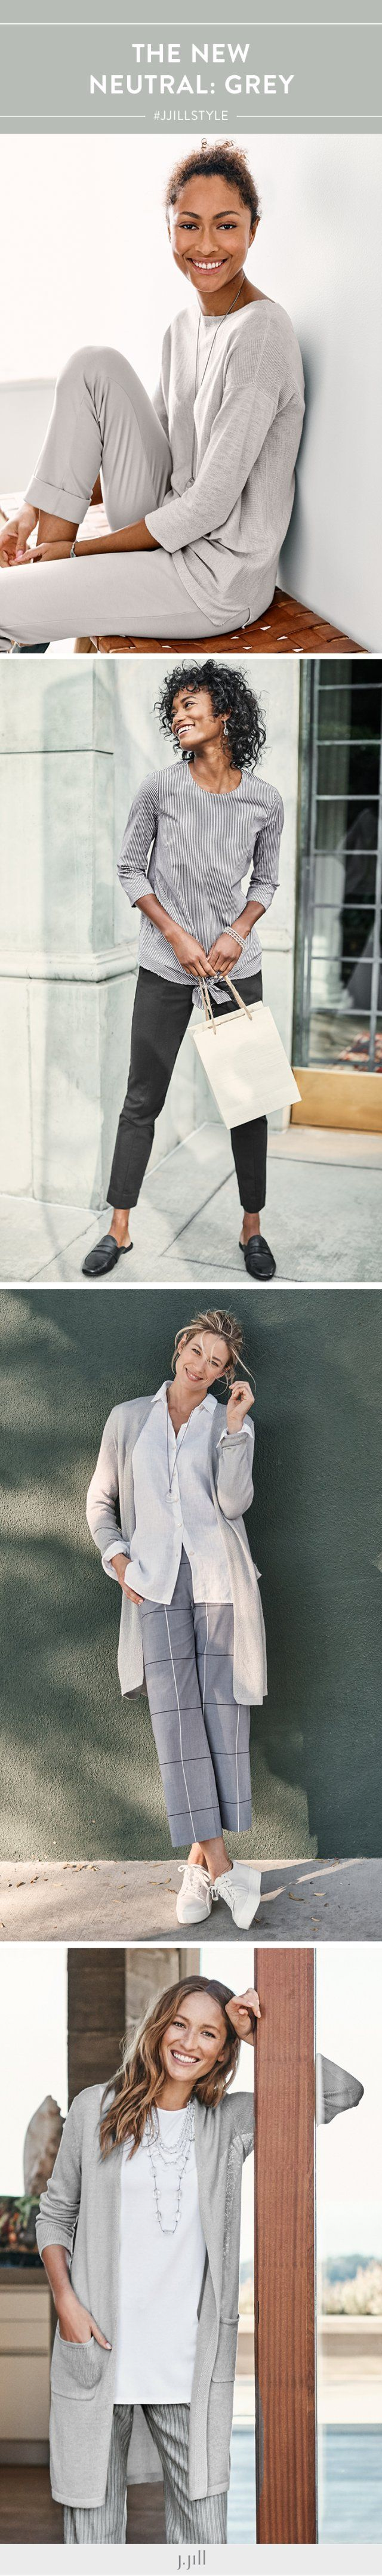 Head-to-toe style in head-to-toe netural. Shop them here (featuring J.Jill's Adrienne Boat-Neck Pullover).